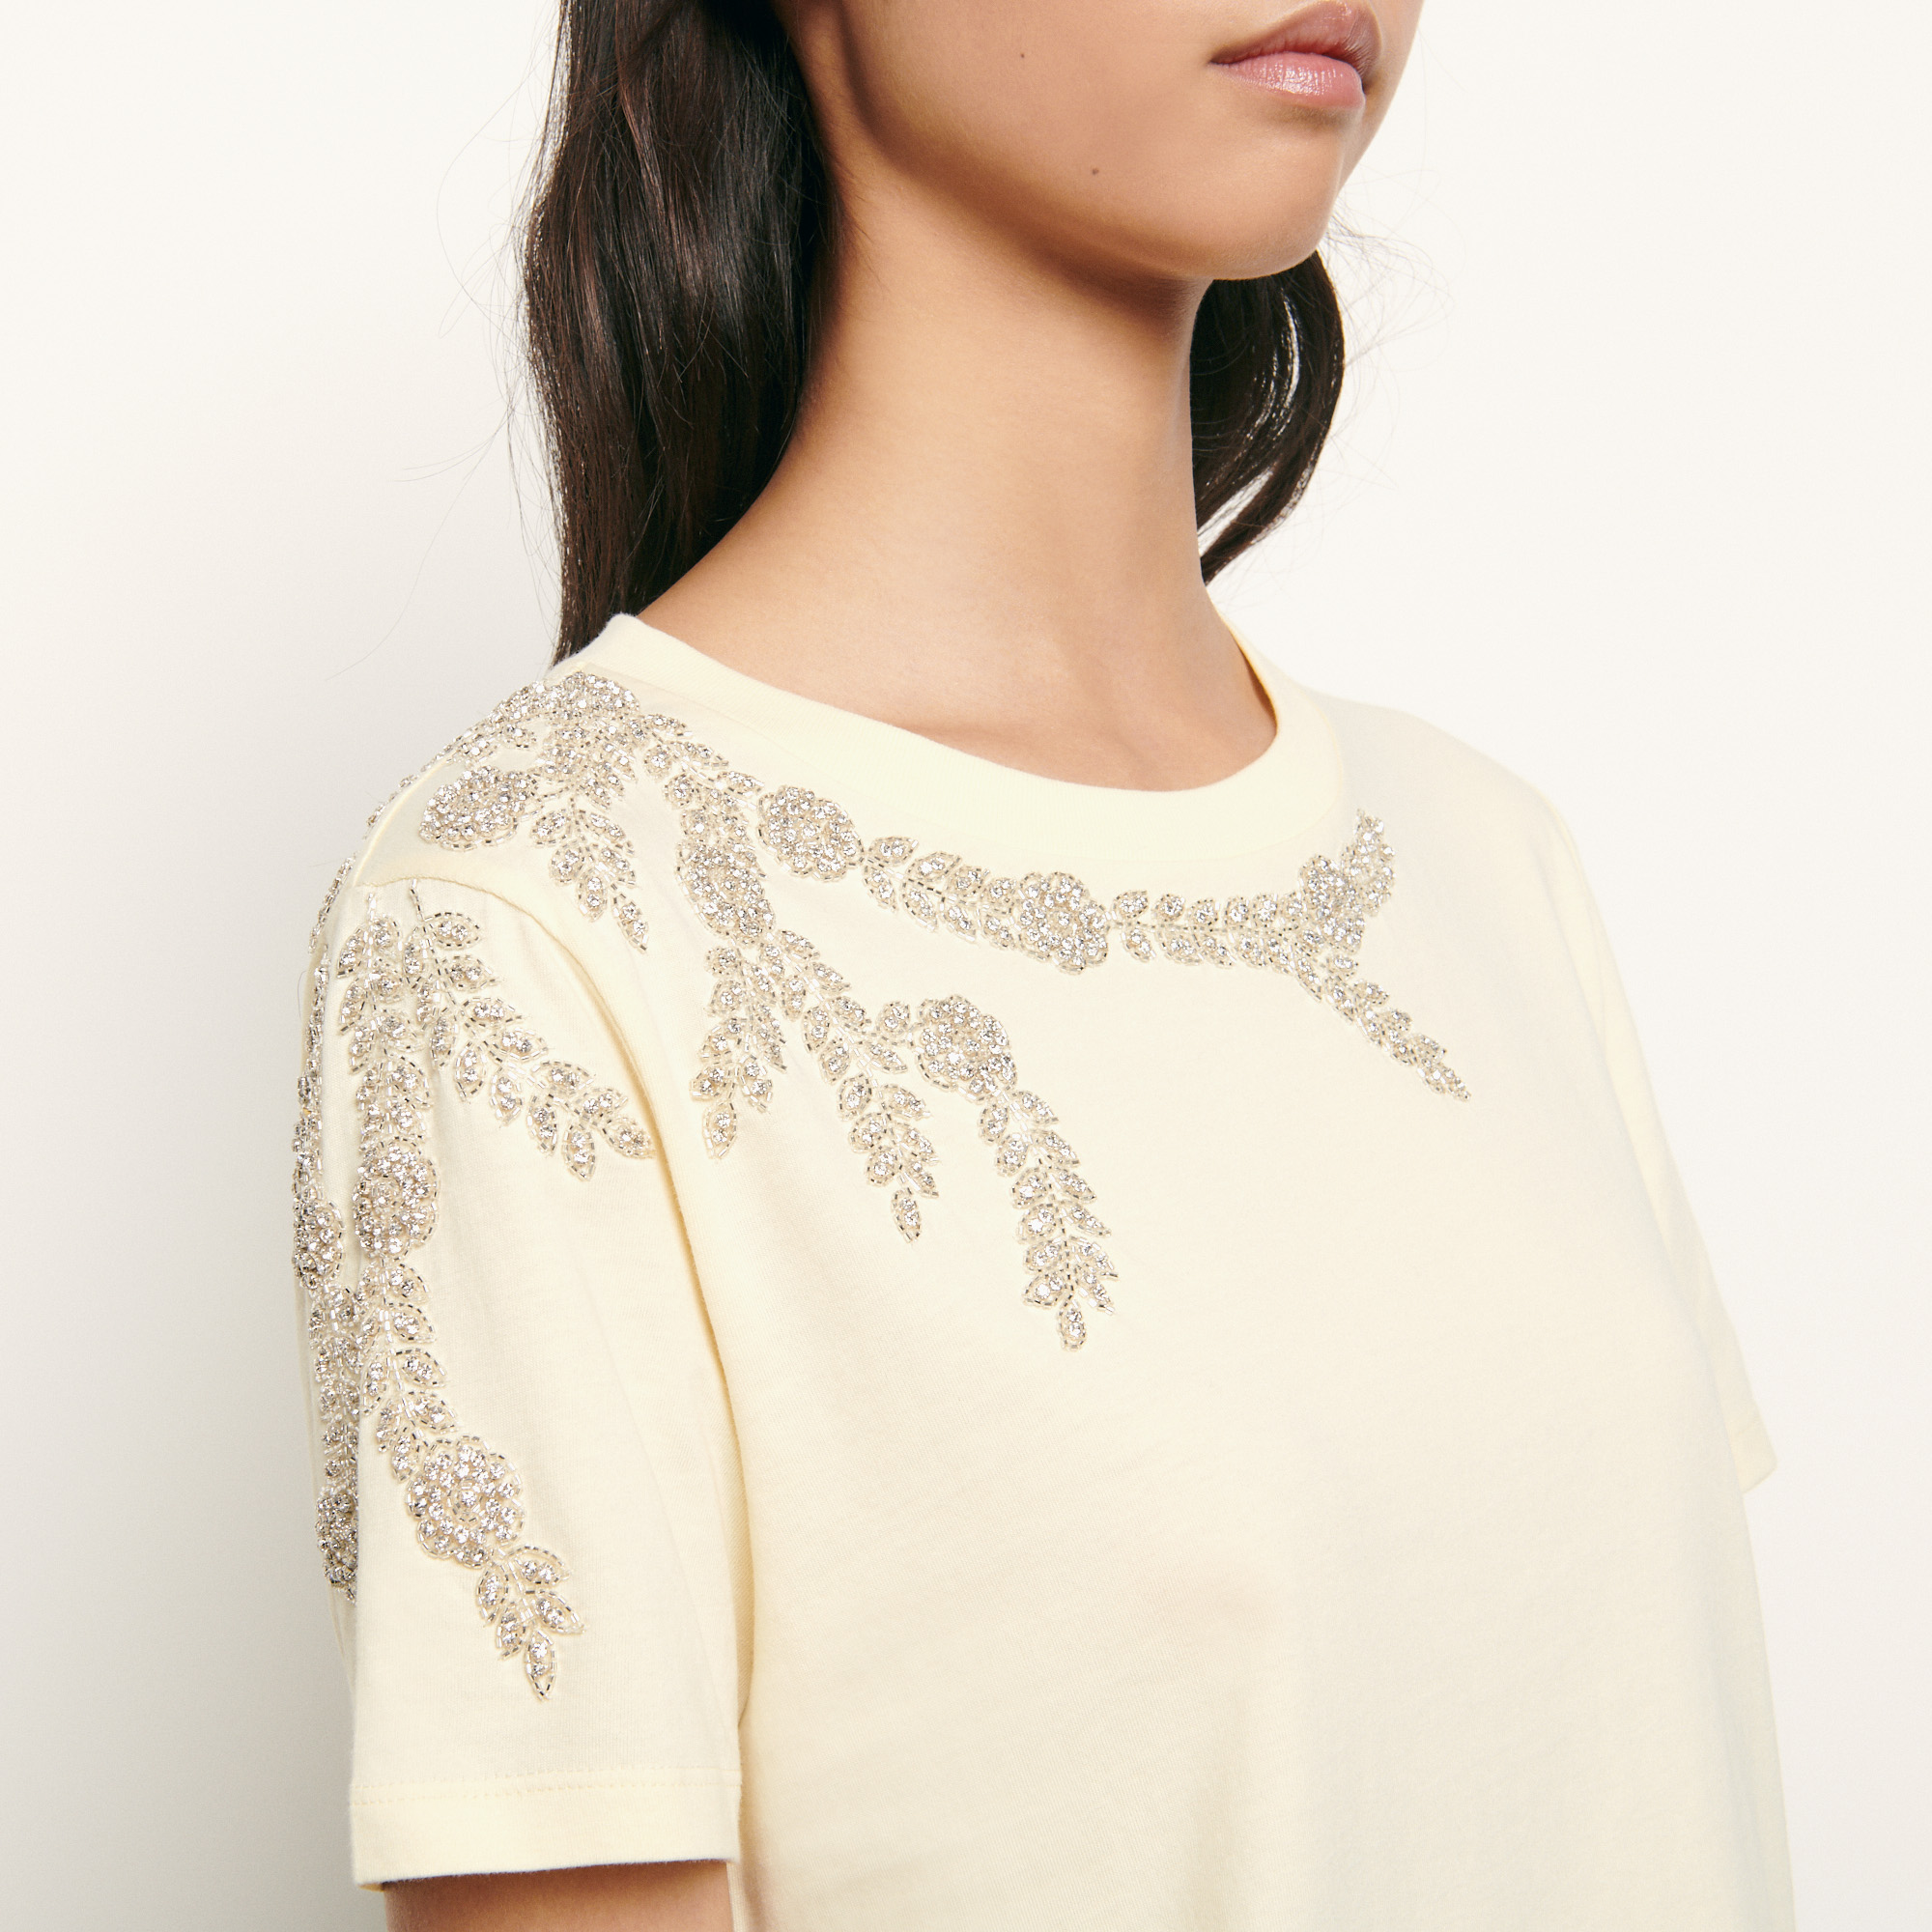 T shirt with embroidery and rhinestones - Yellow